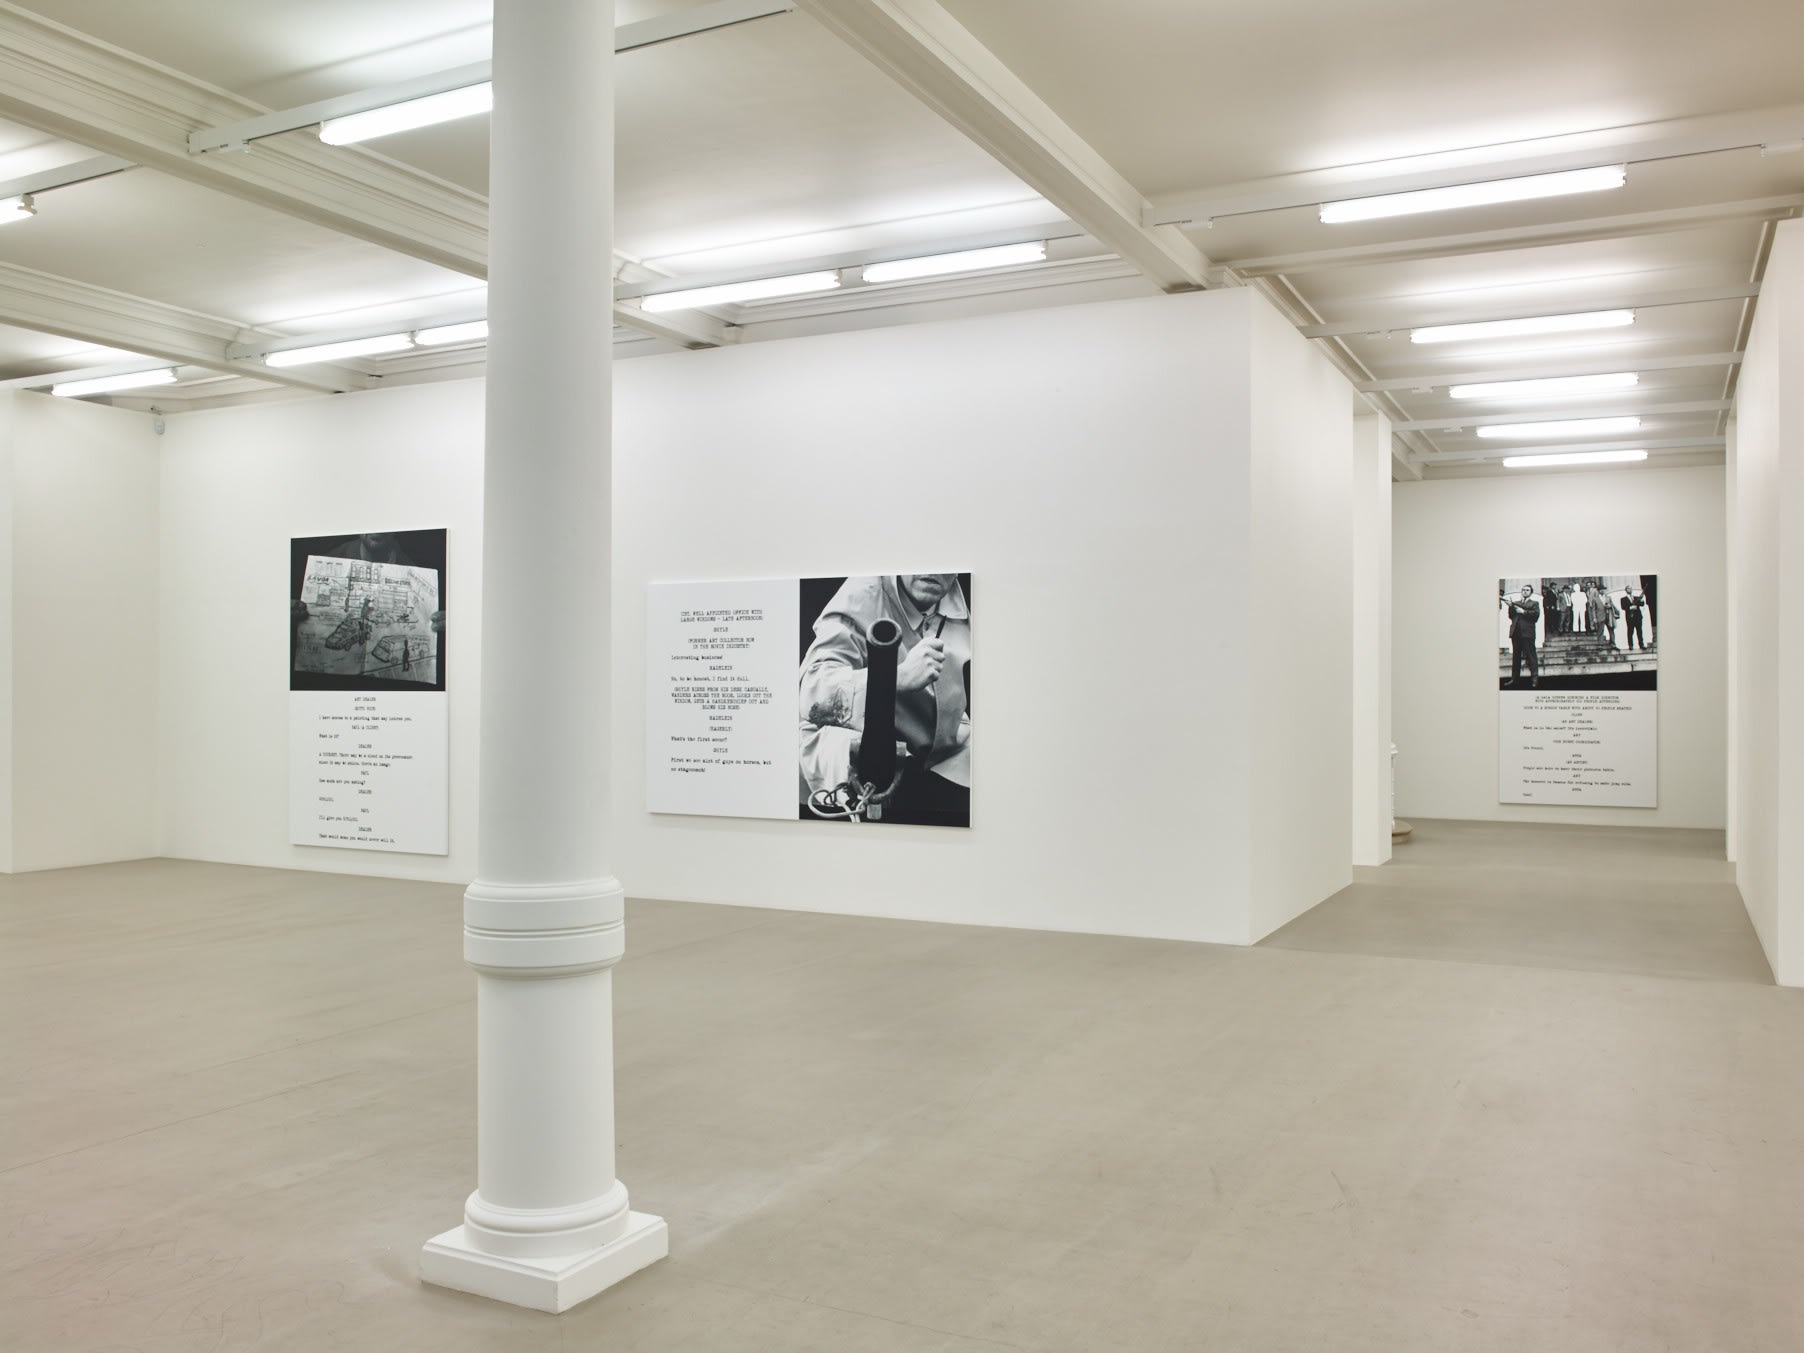 In a large white space with columns, 3 large paintings hang. Each are roughly half image and half text, which is in the format of a film script.